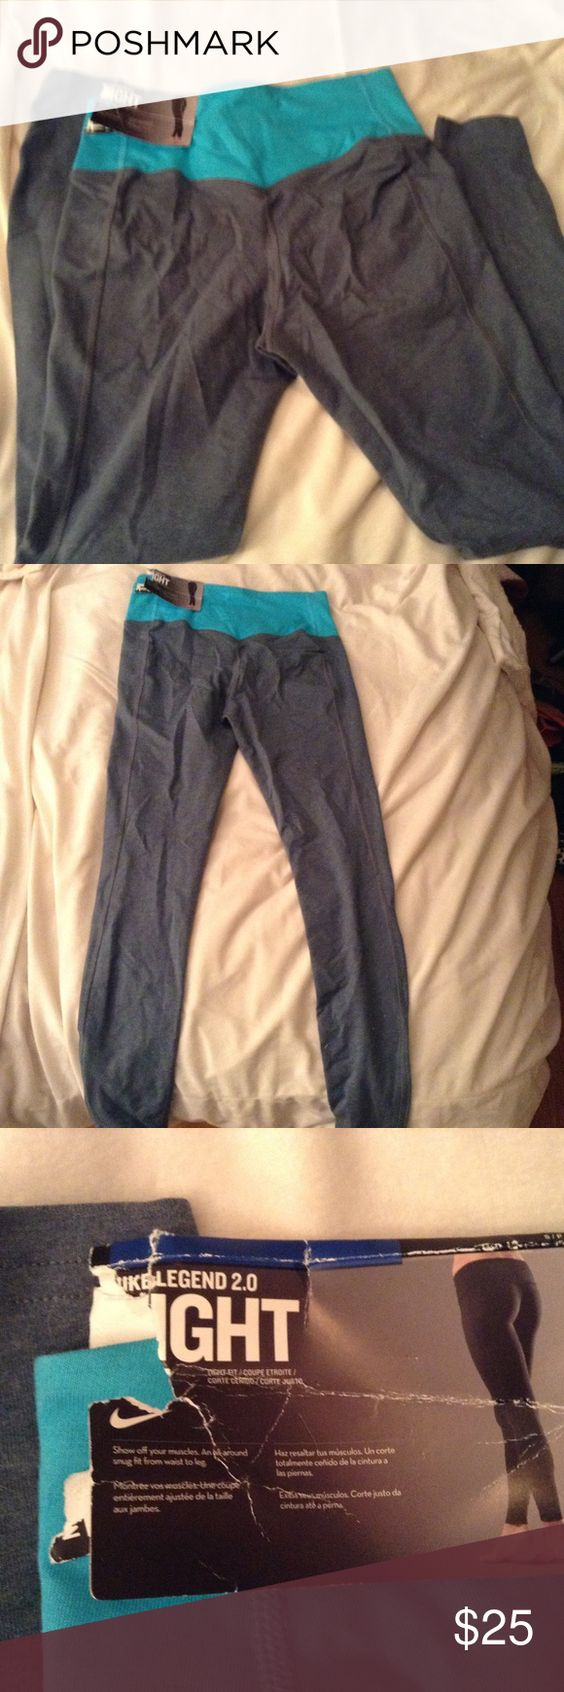 Nike Legend 2.0 Leggings size Small NWT New pair of Nike Legend 2.0 tight fit/light fit leggings in size small. Never worn. Tag is torn but still attached. Top of band is a aquamarine type blue and legs are a denim light color. B2 Nike Pants Leggings